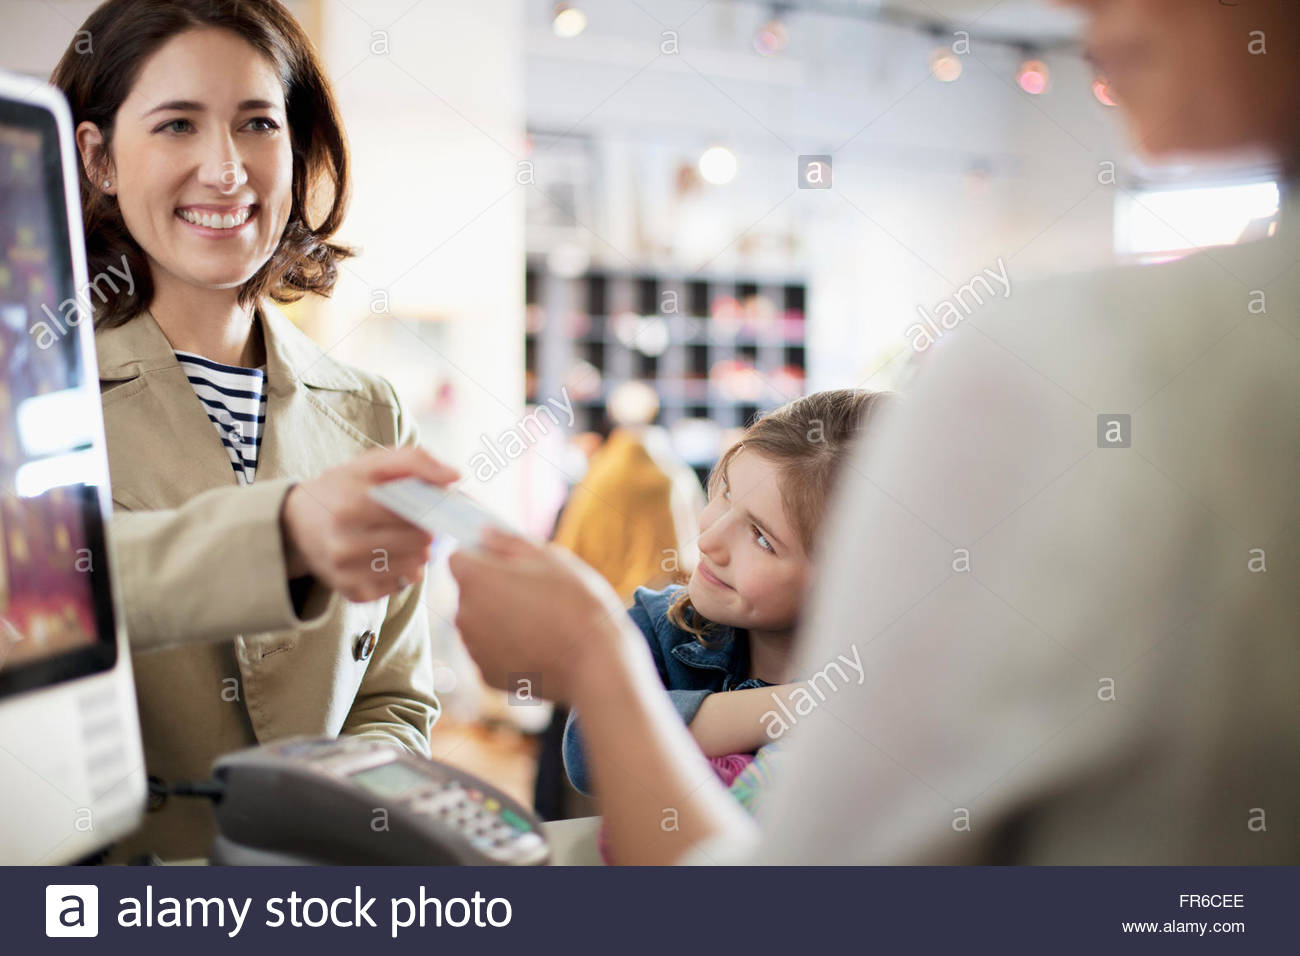 woman paying for purchase - Stock Image